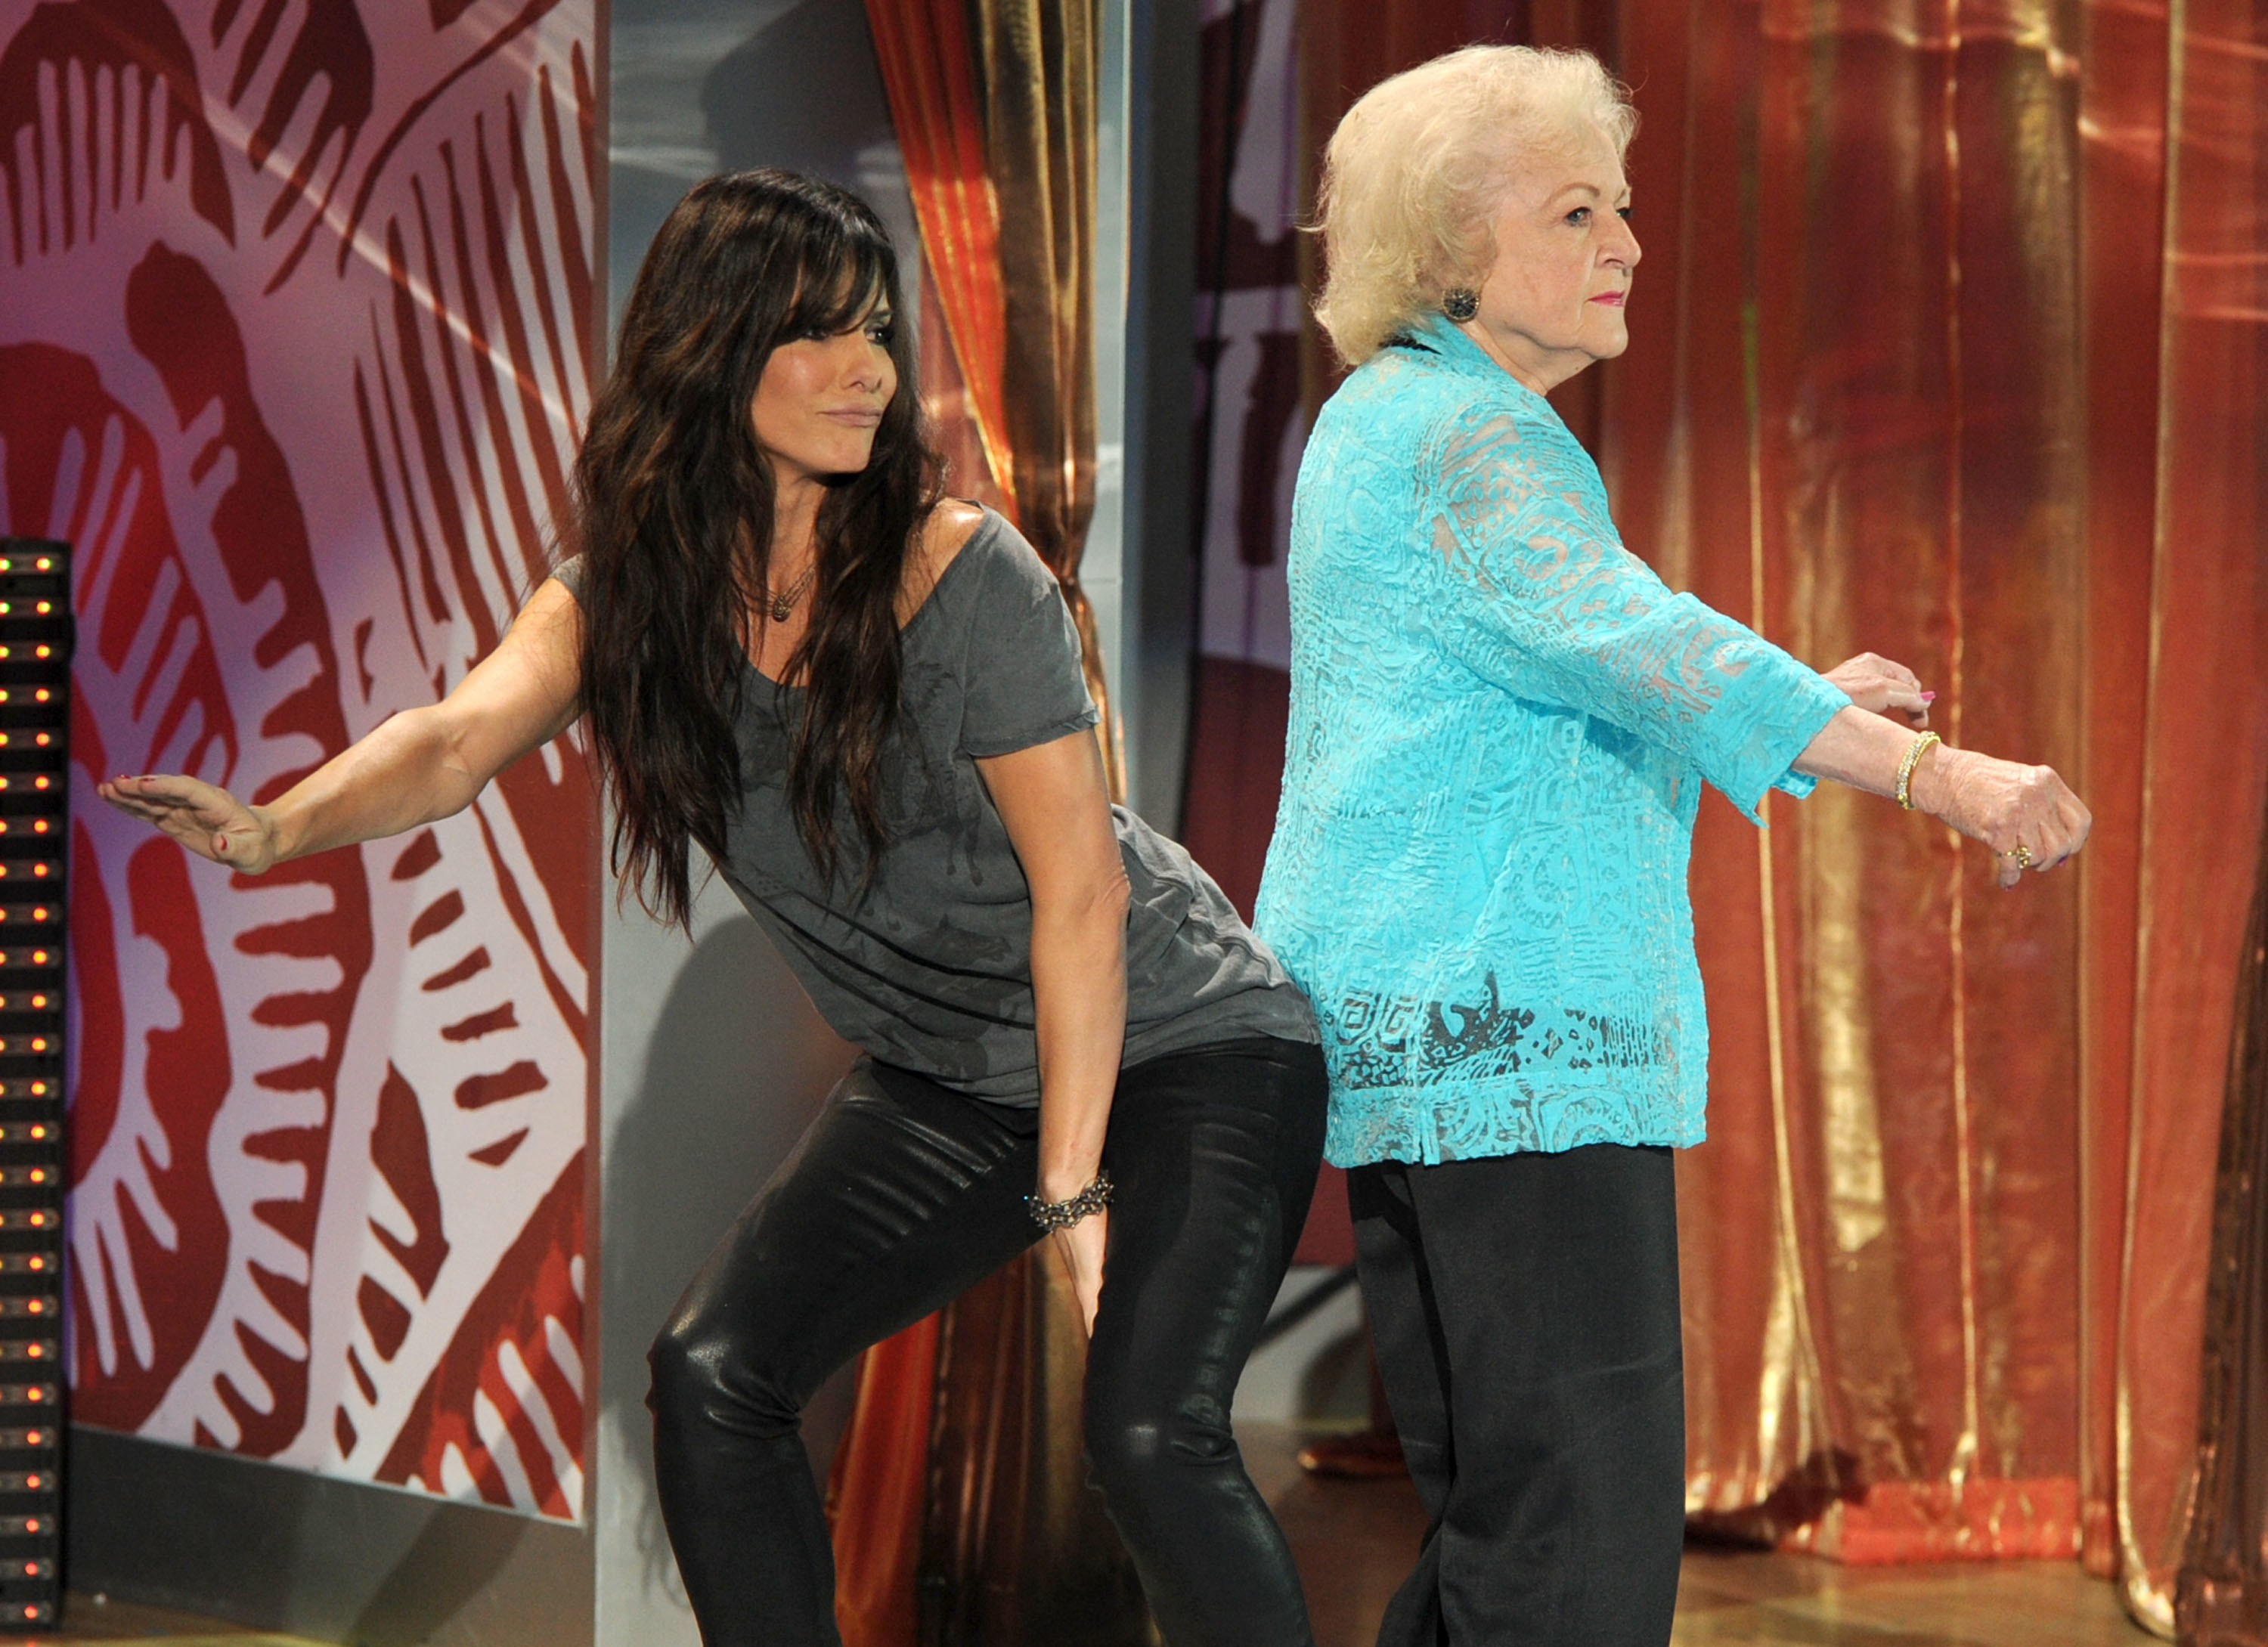 Sandra Bullock grinding her buttocks against Betty White's bum on stage at the Teen Choice Awards.